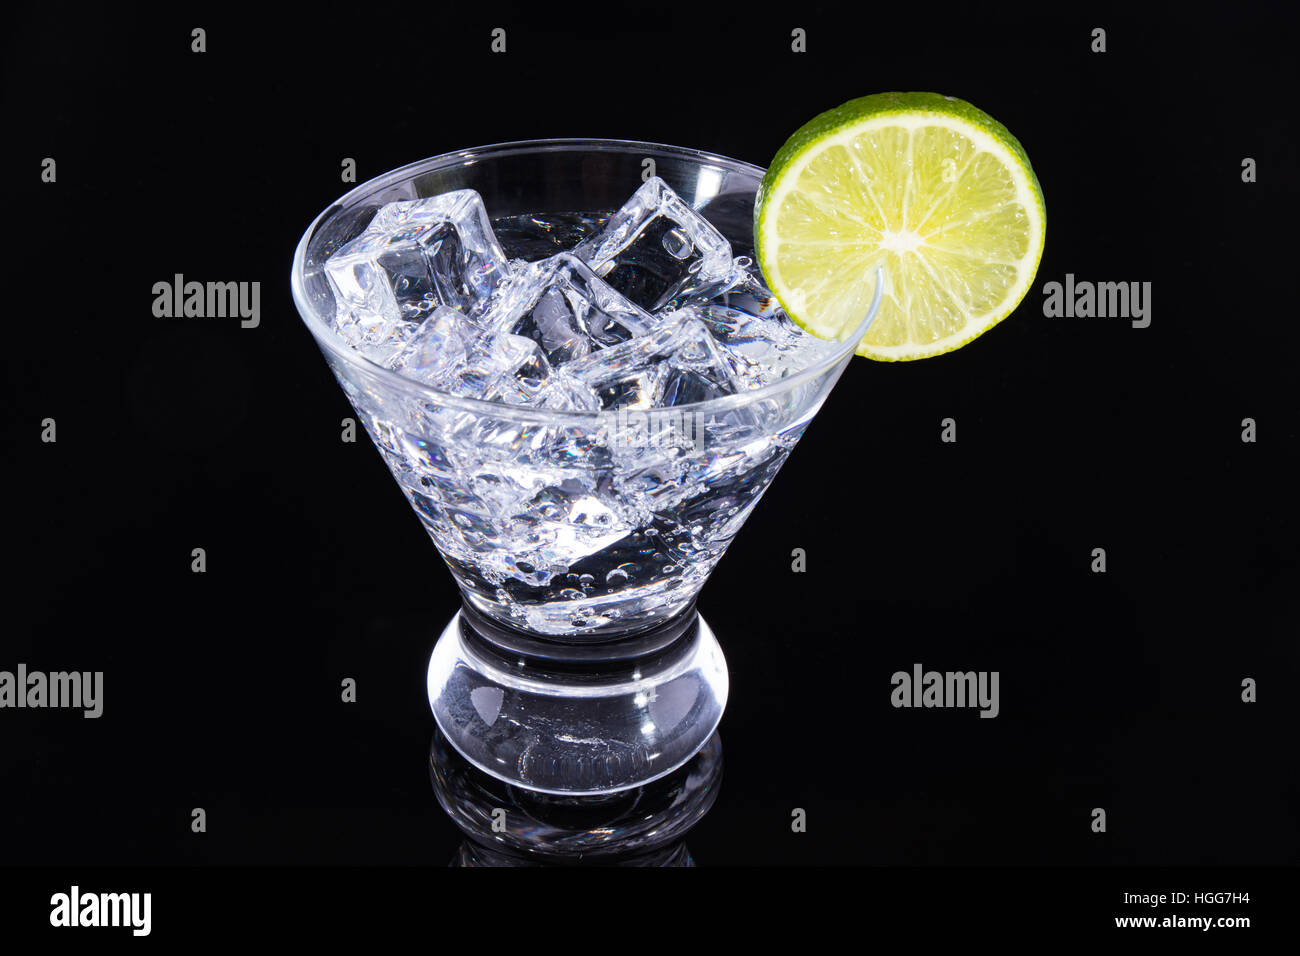 Sparkling beverage in a martini glass with a lime slice on a black background Stock Photo